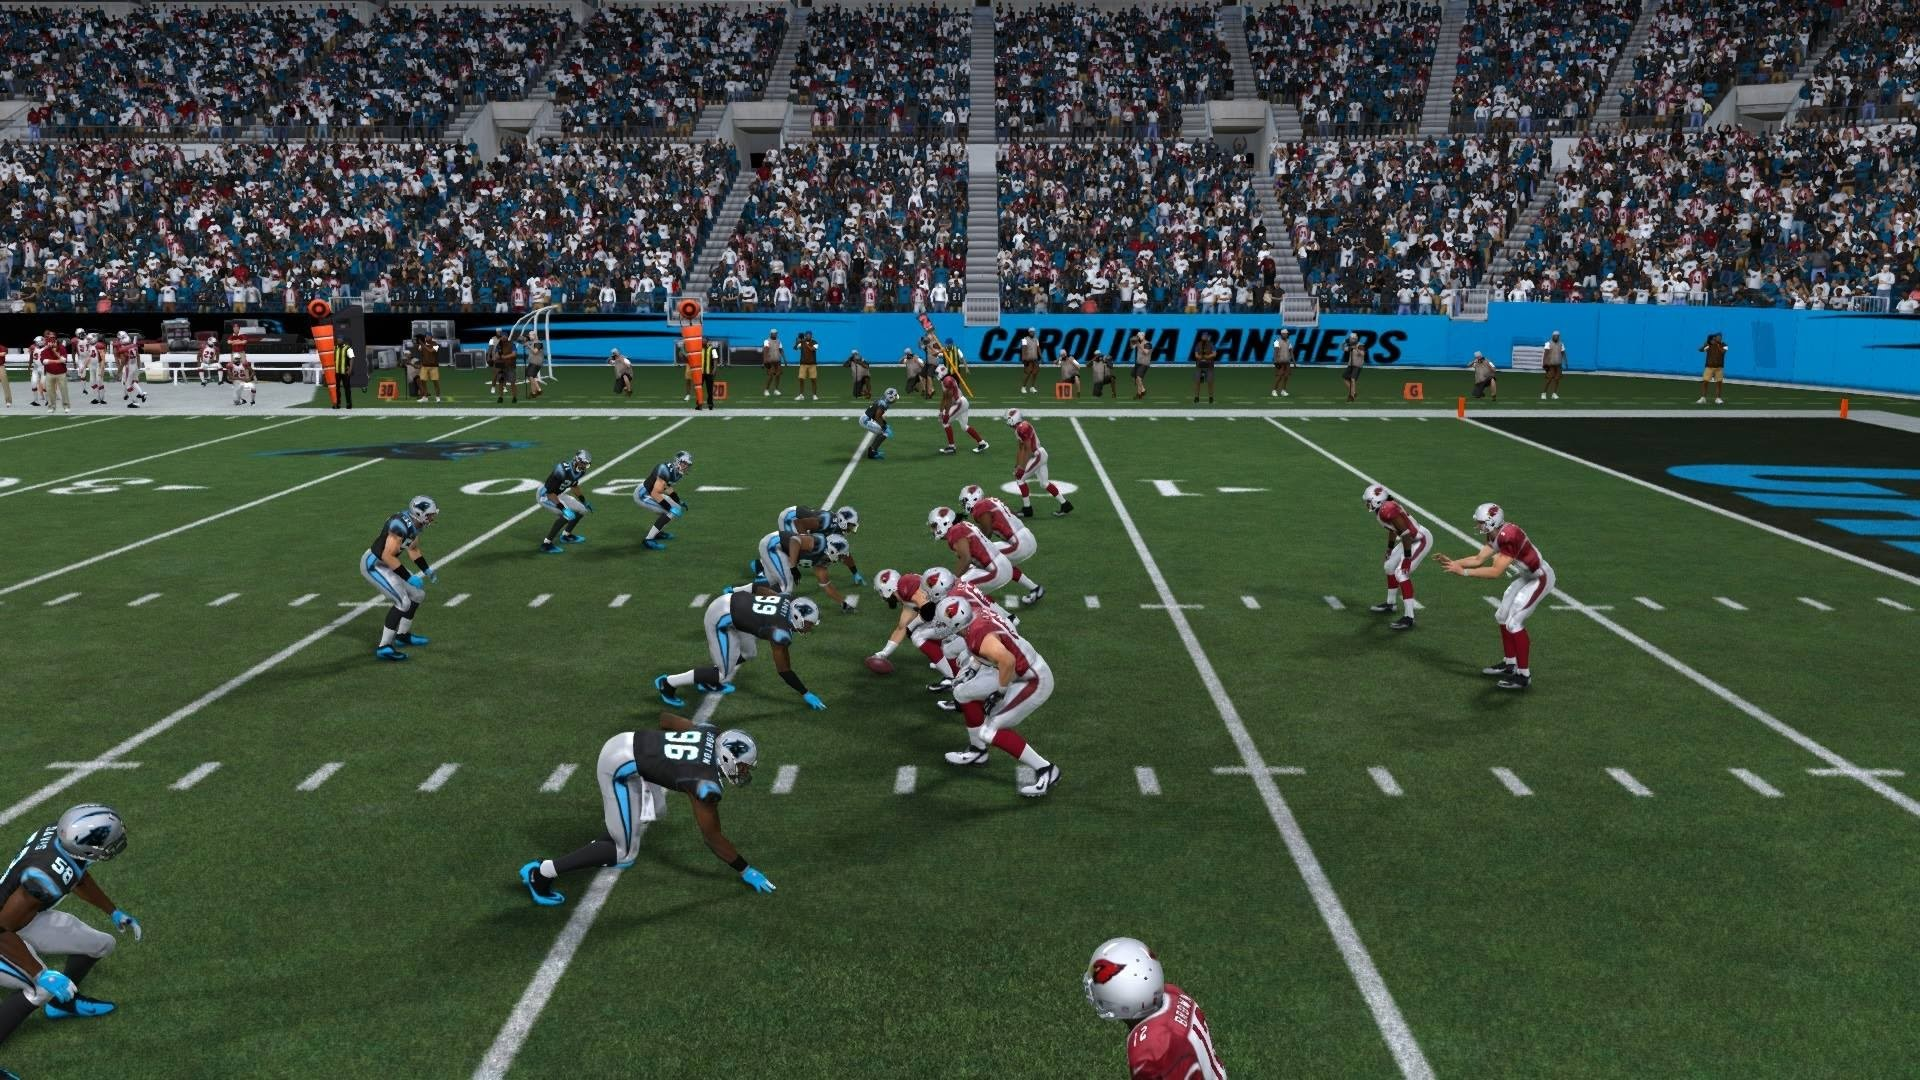 1920x1080 NFL Playoffs 2015 - Arizona Cardinals vs Carolina Panthers - 1st Qrt -  Madden 15 PS4 - HD - YouTube